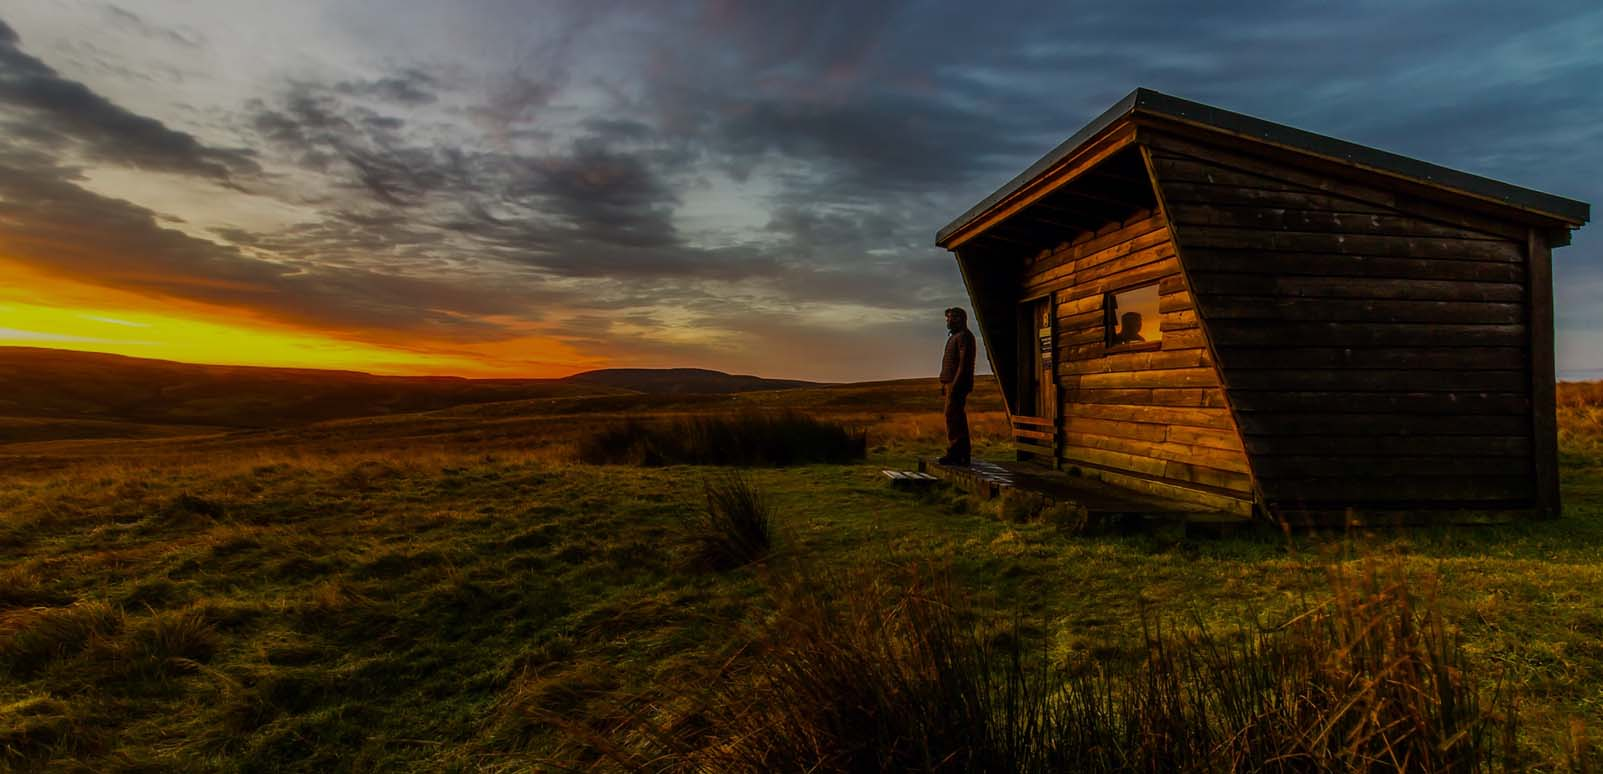 wooden shack in the wilderness